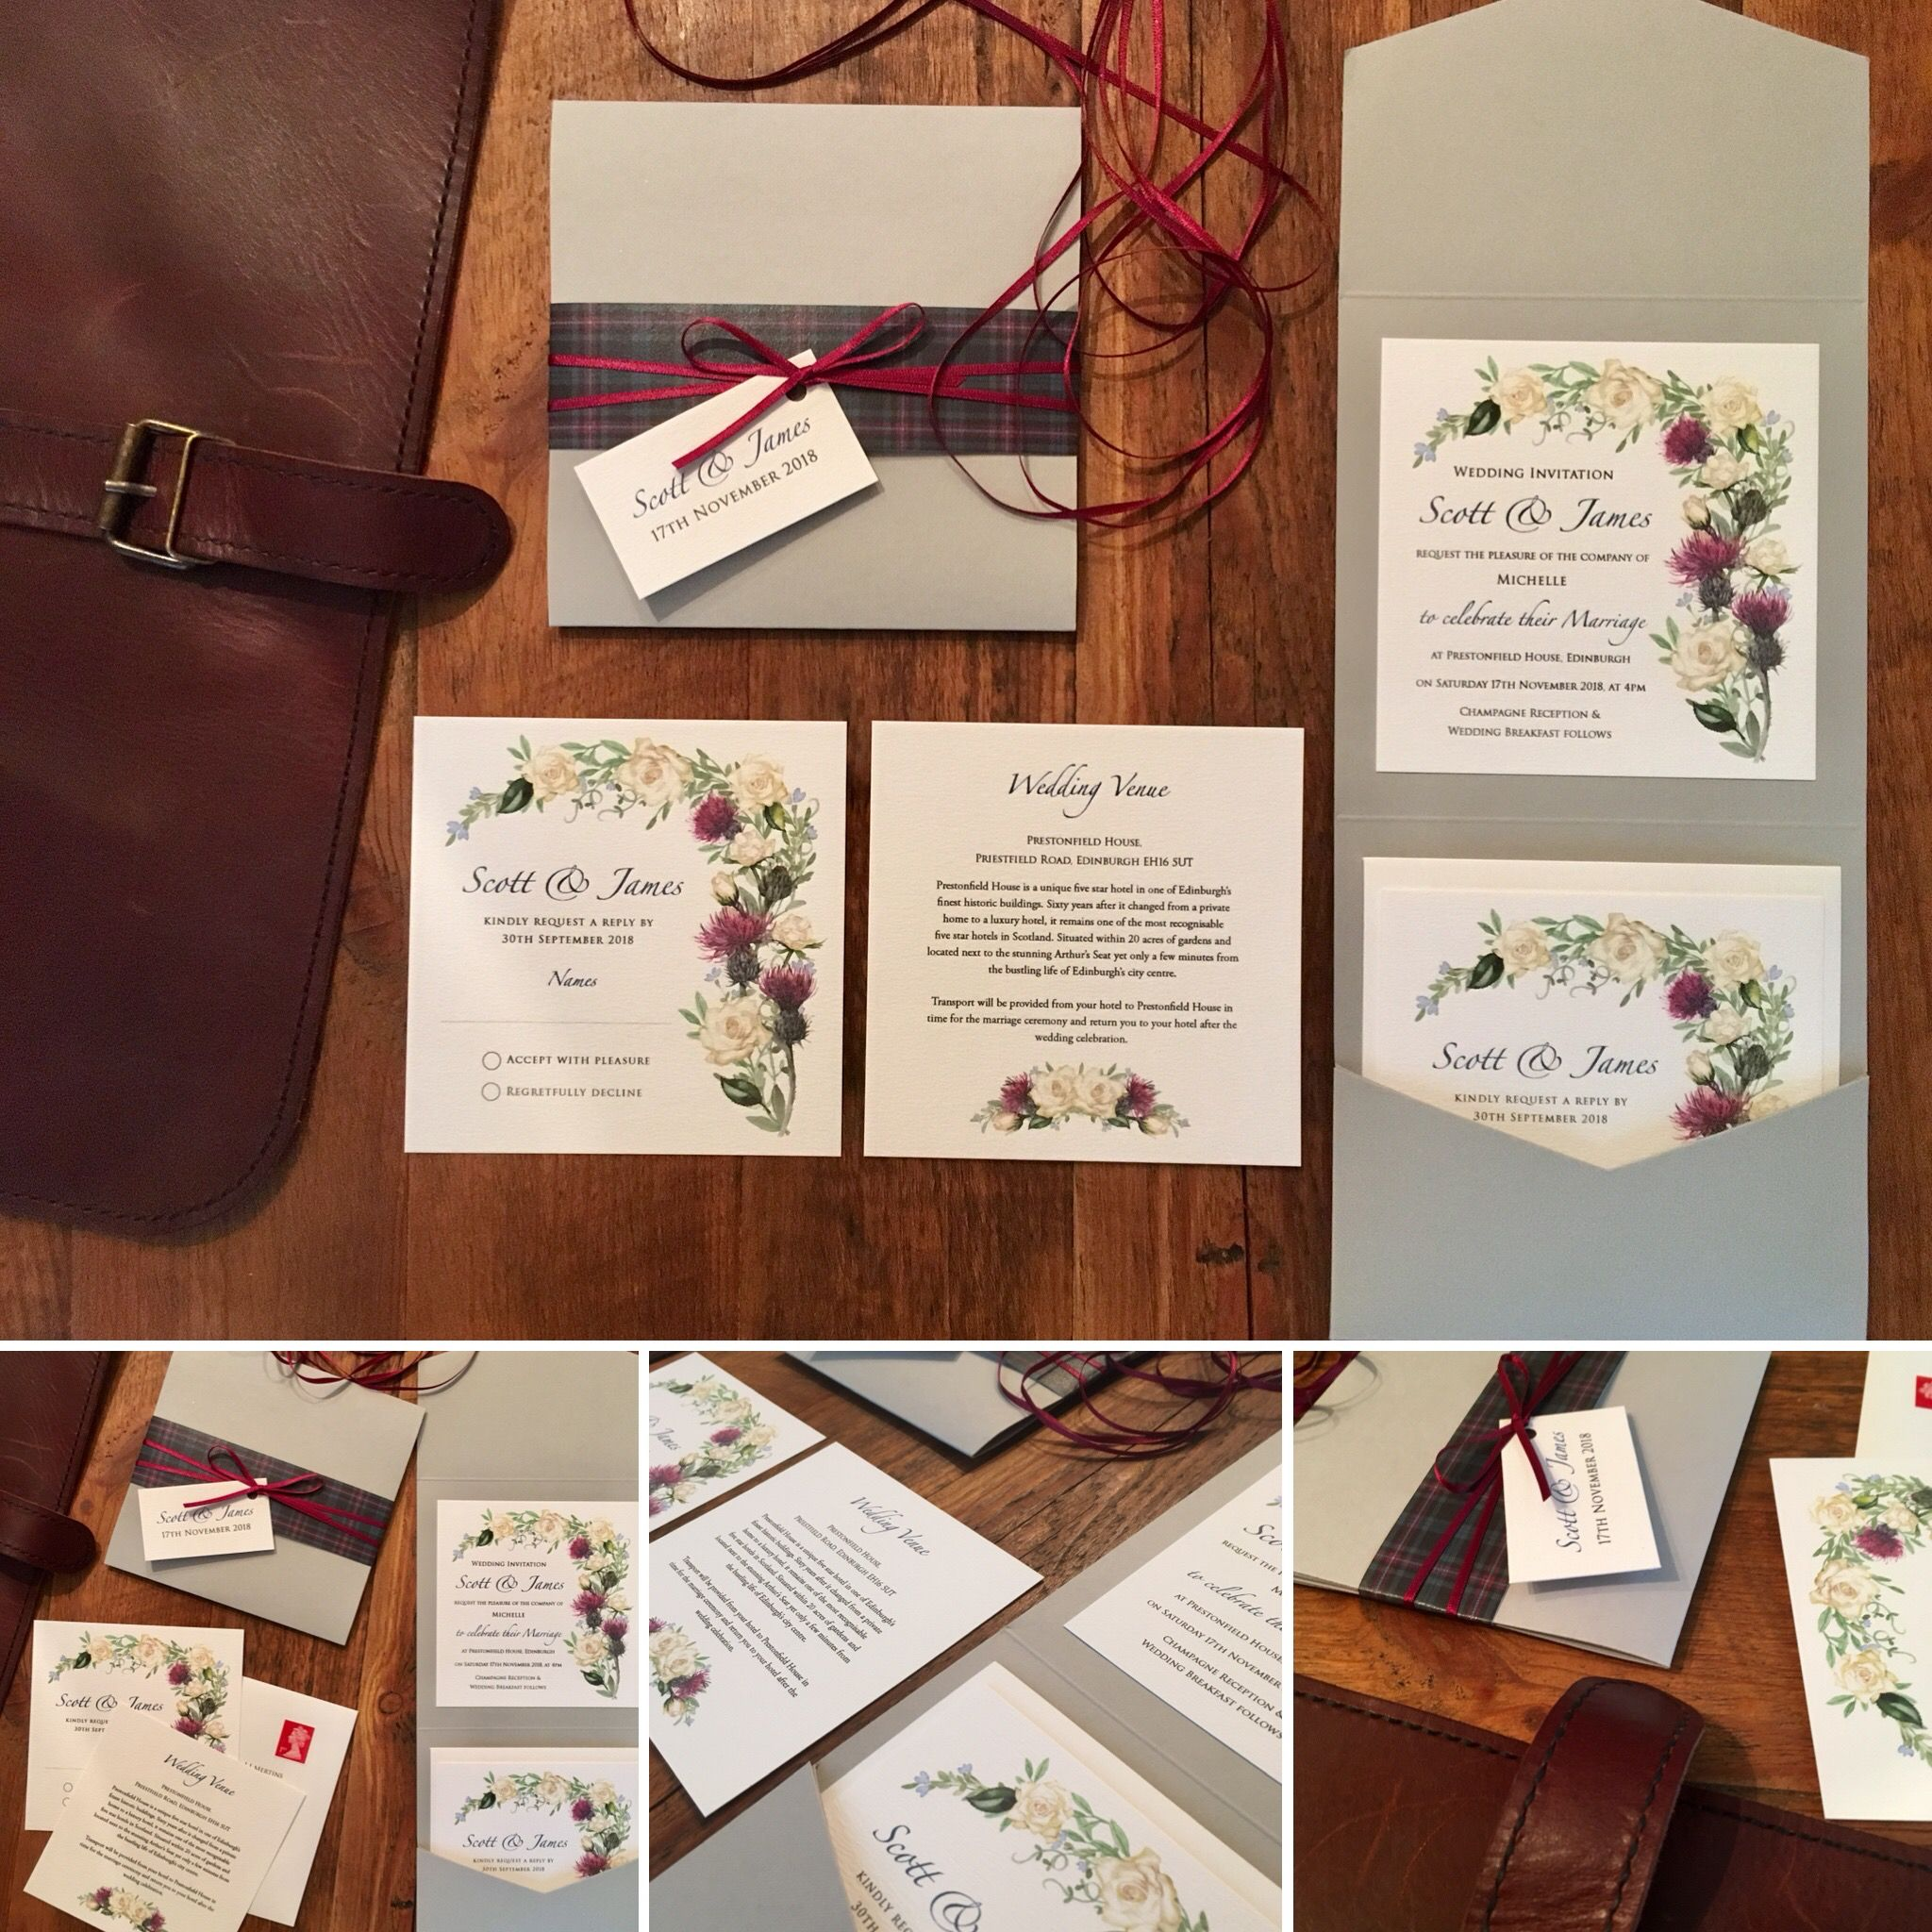 Bespoke designs for your wedding invitations Beautiful